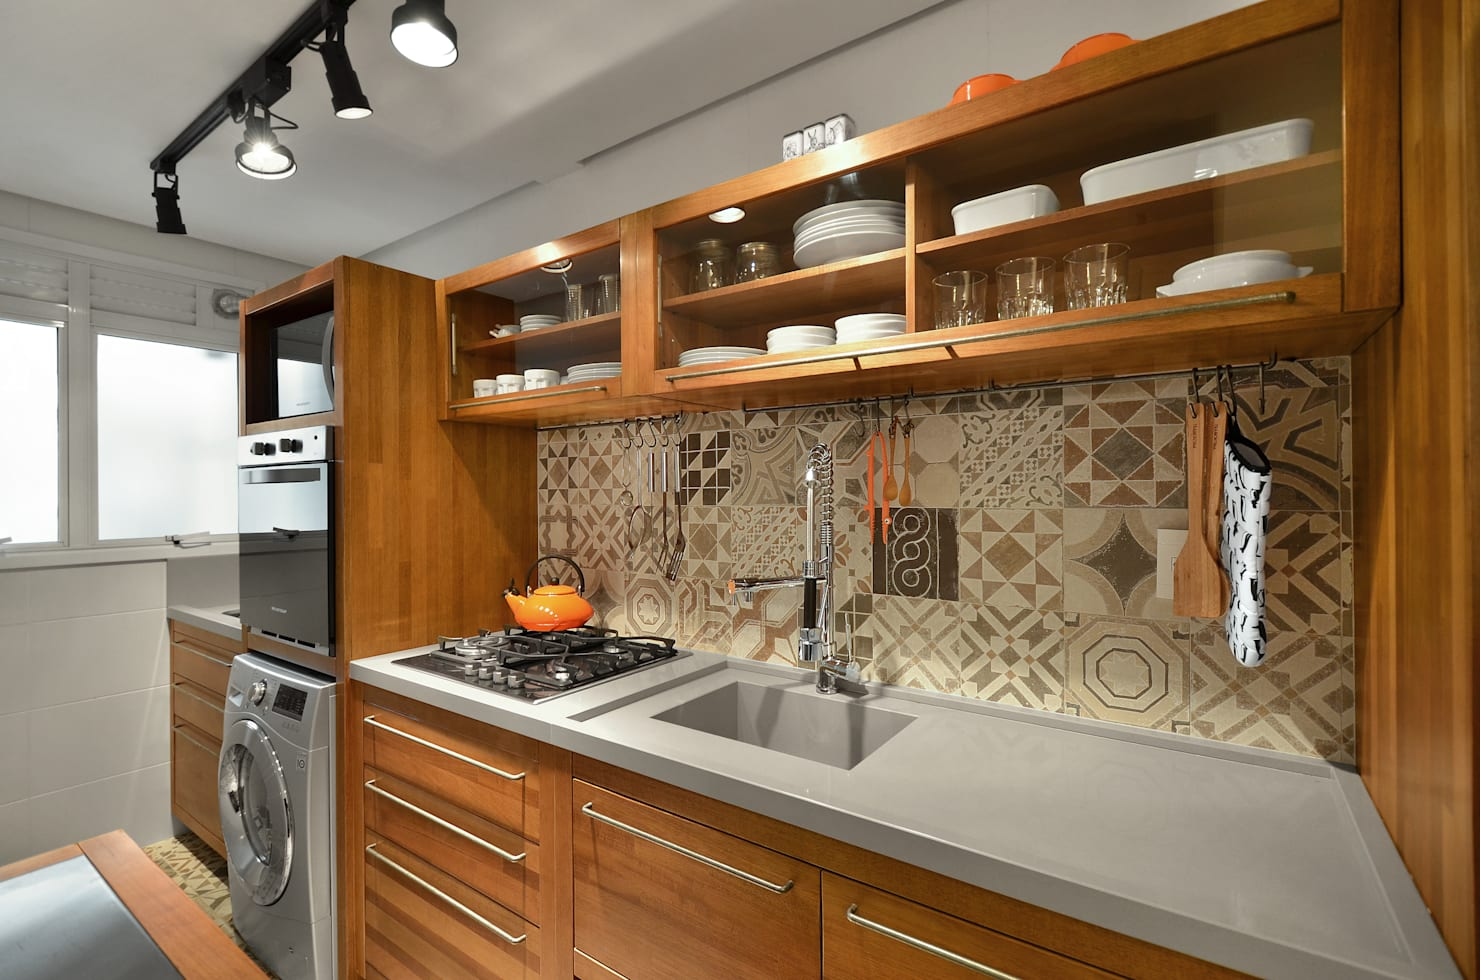 15 pictures of small kitchens for your home